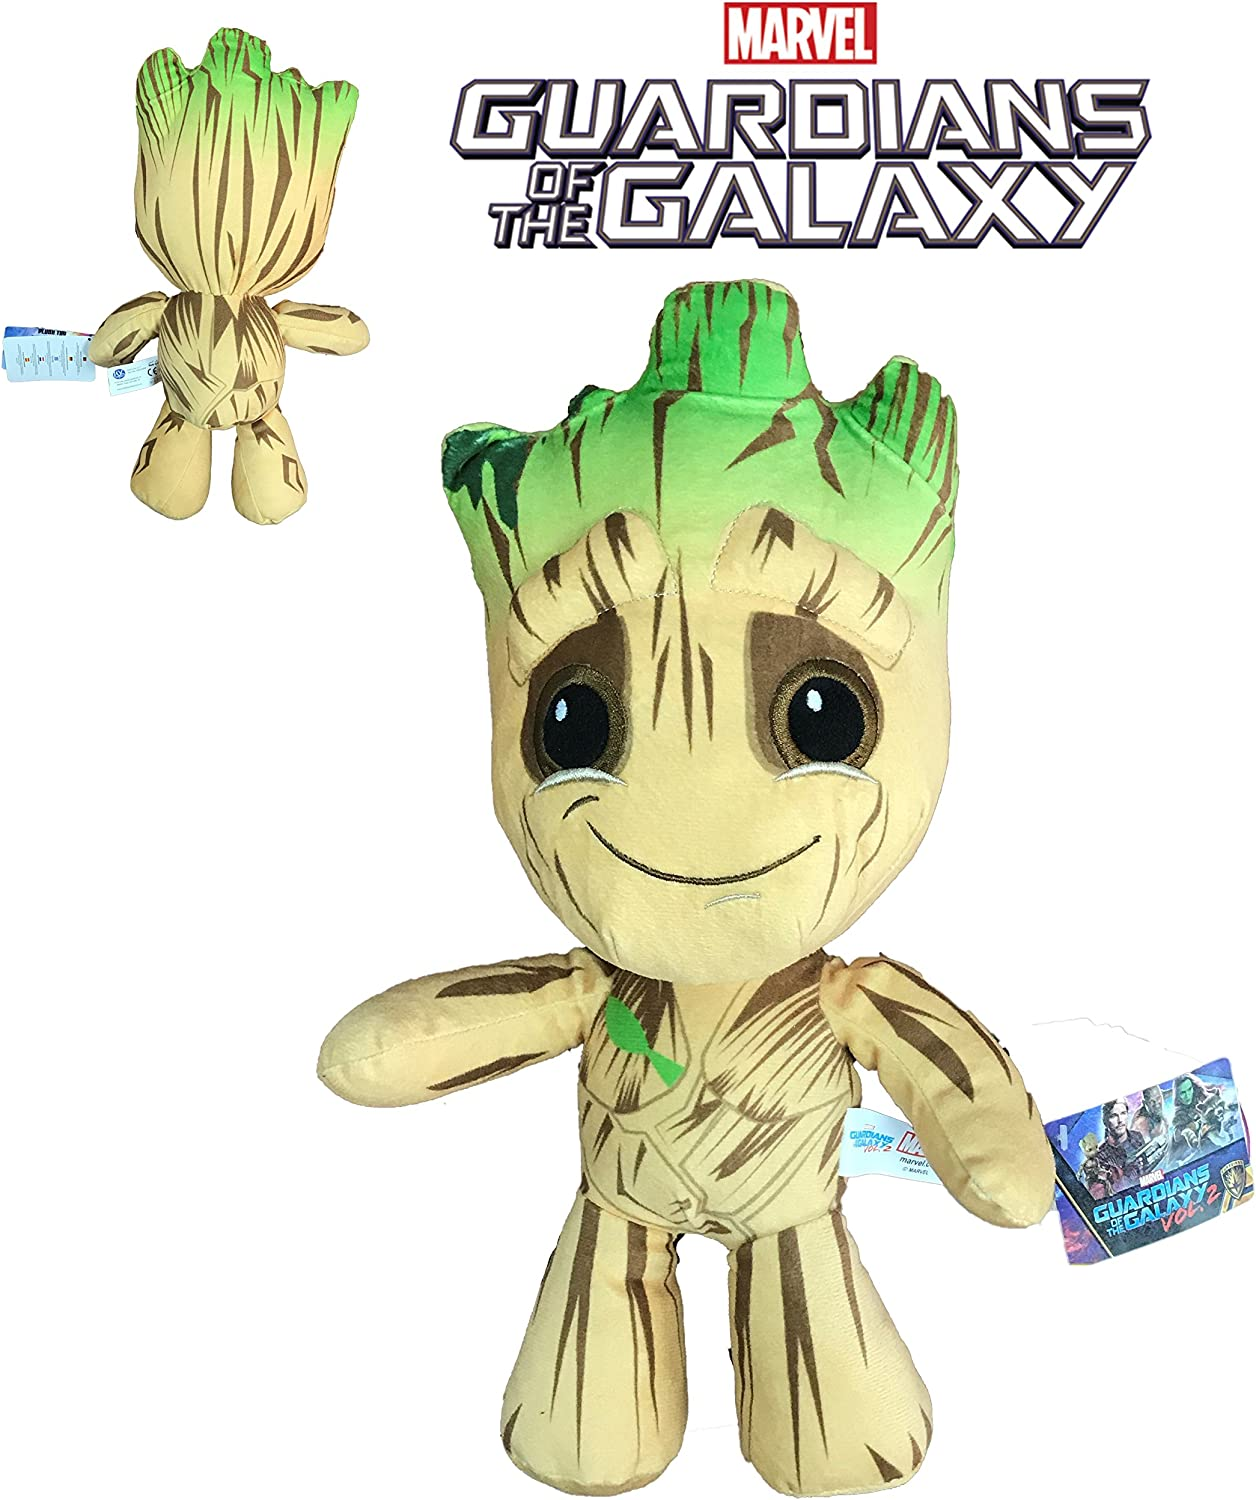 Marvel Guardianes de la Galaxia - Peluche Groot 33cm Calidad super soft